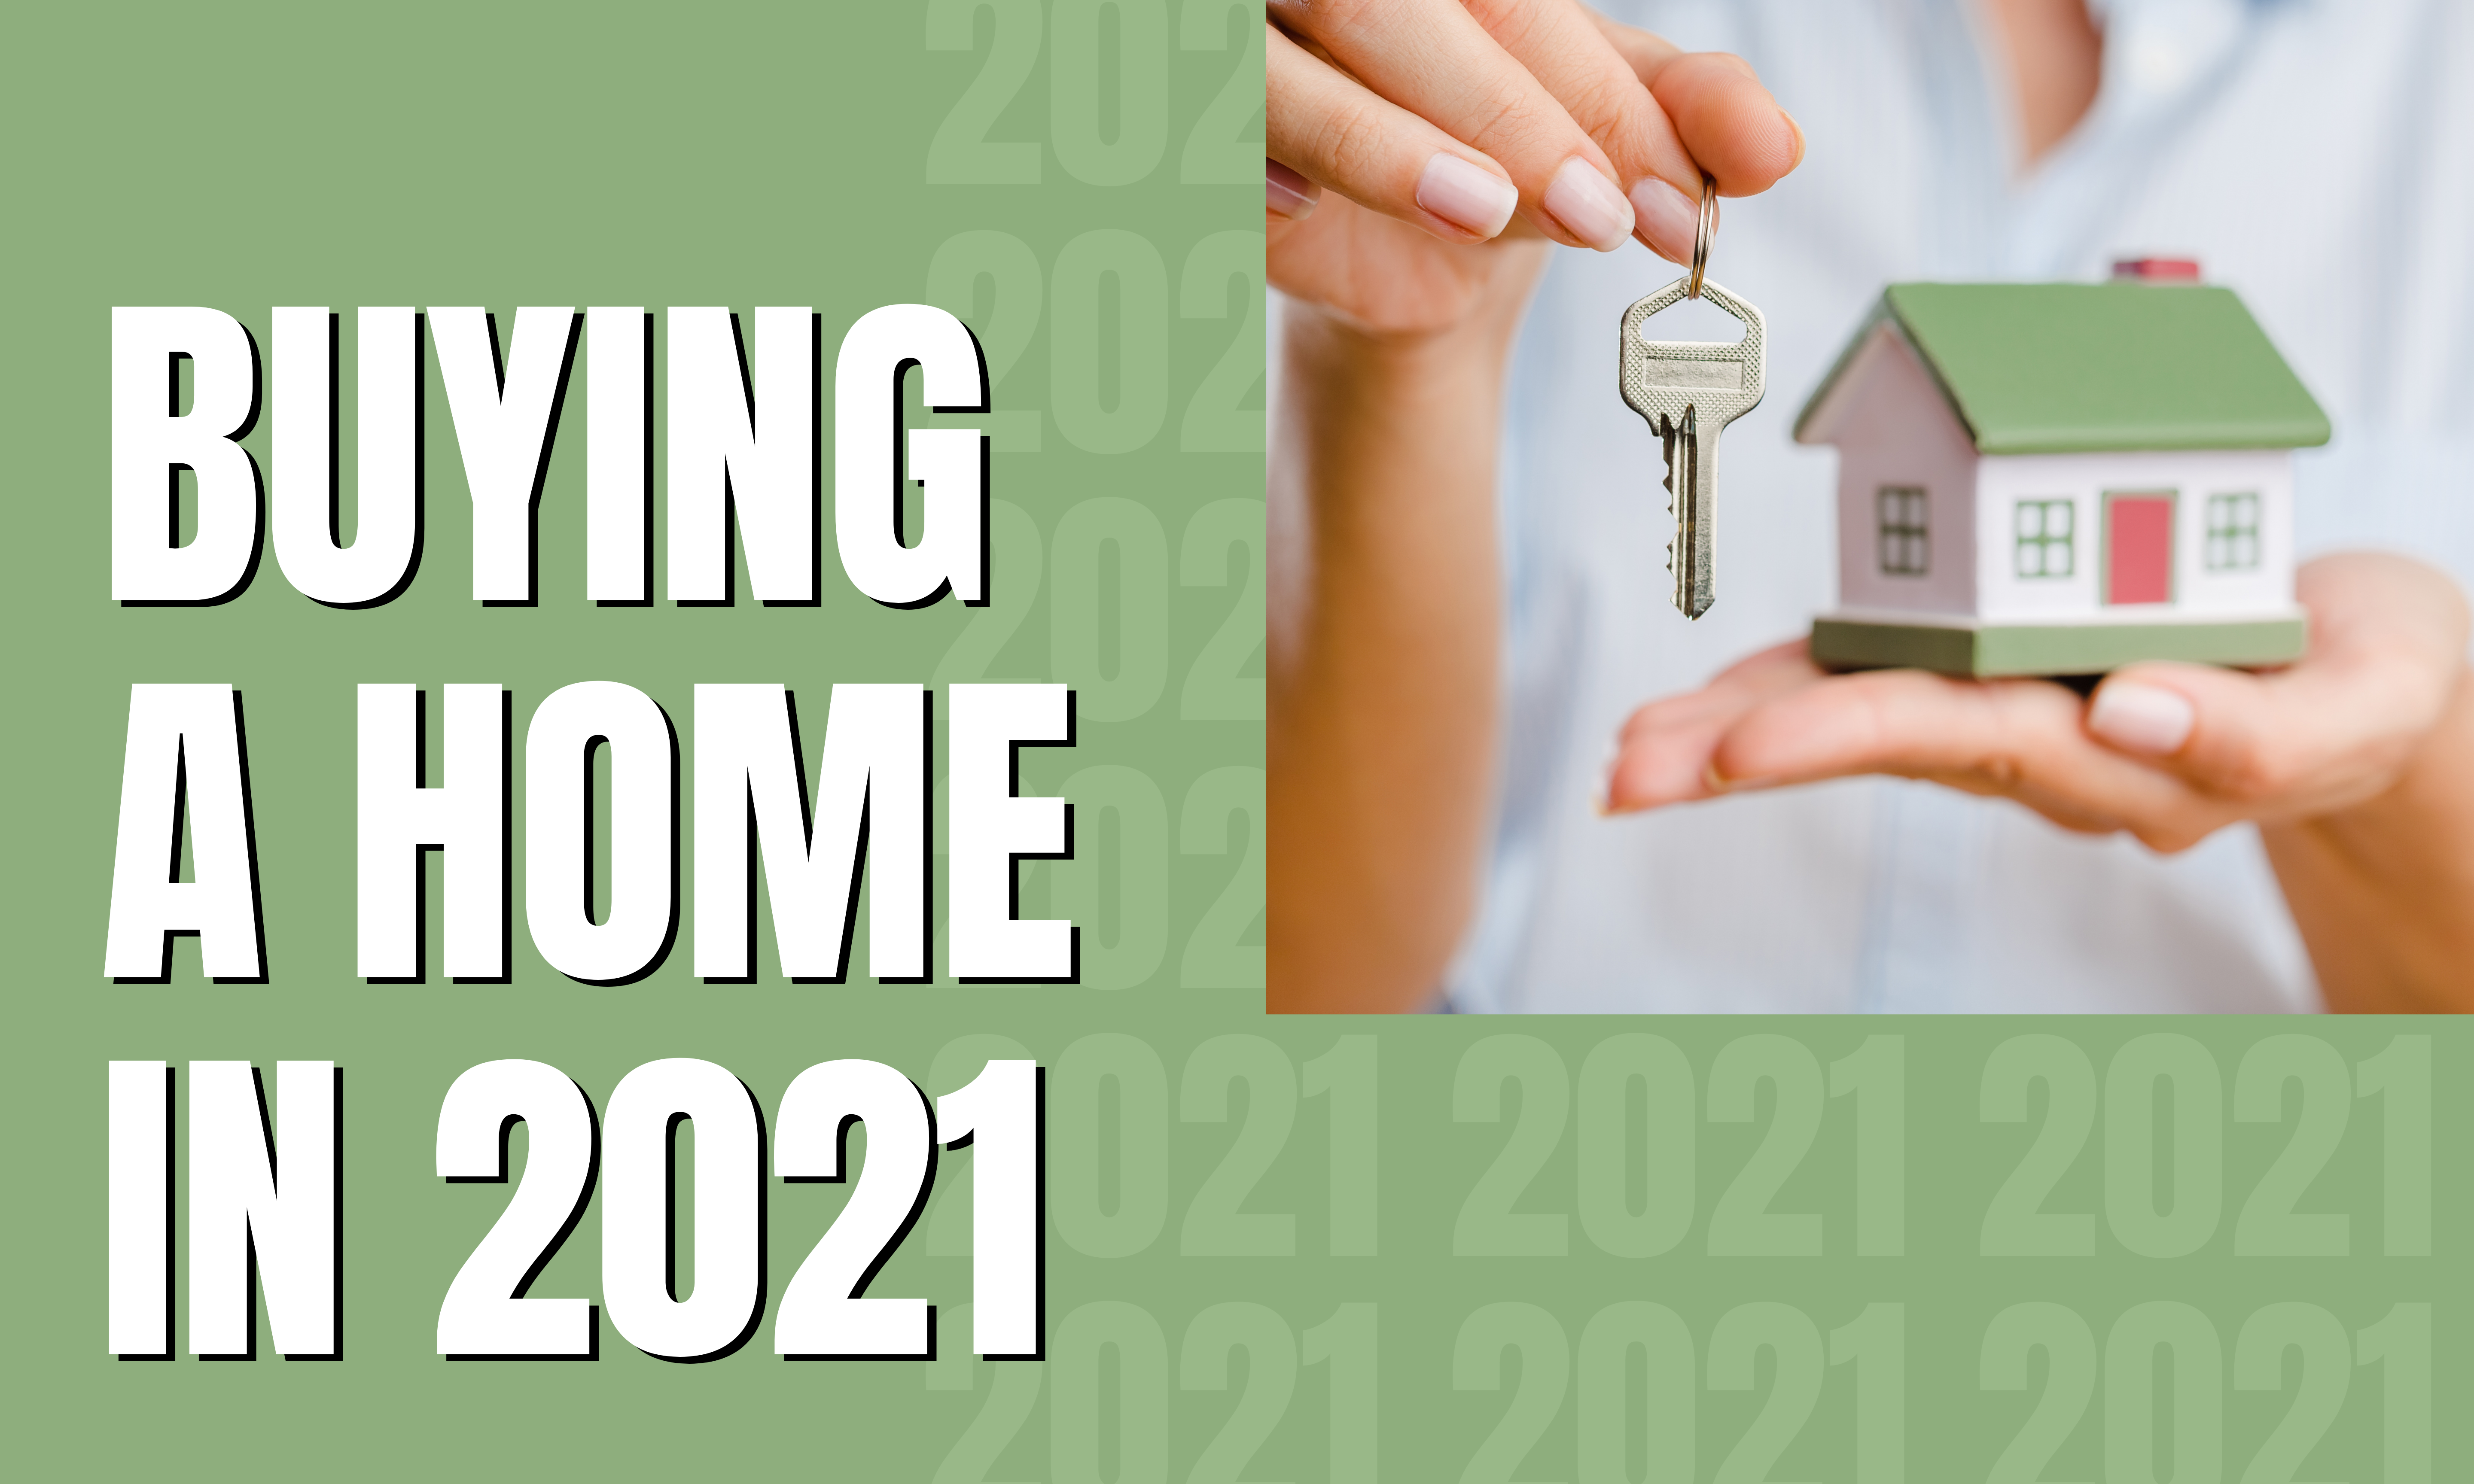 What Buying a Home Looks Like in 2021